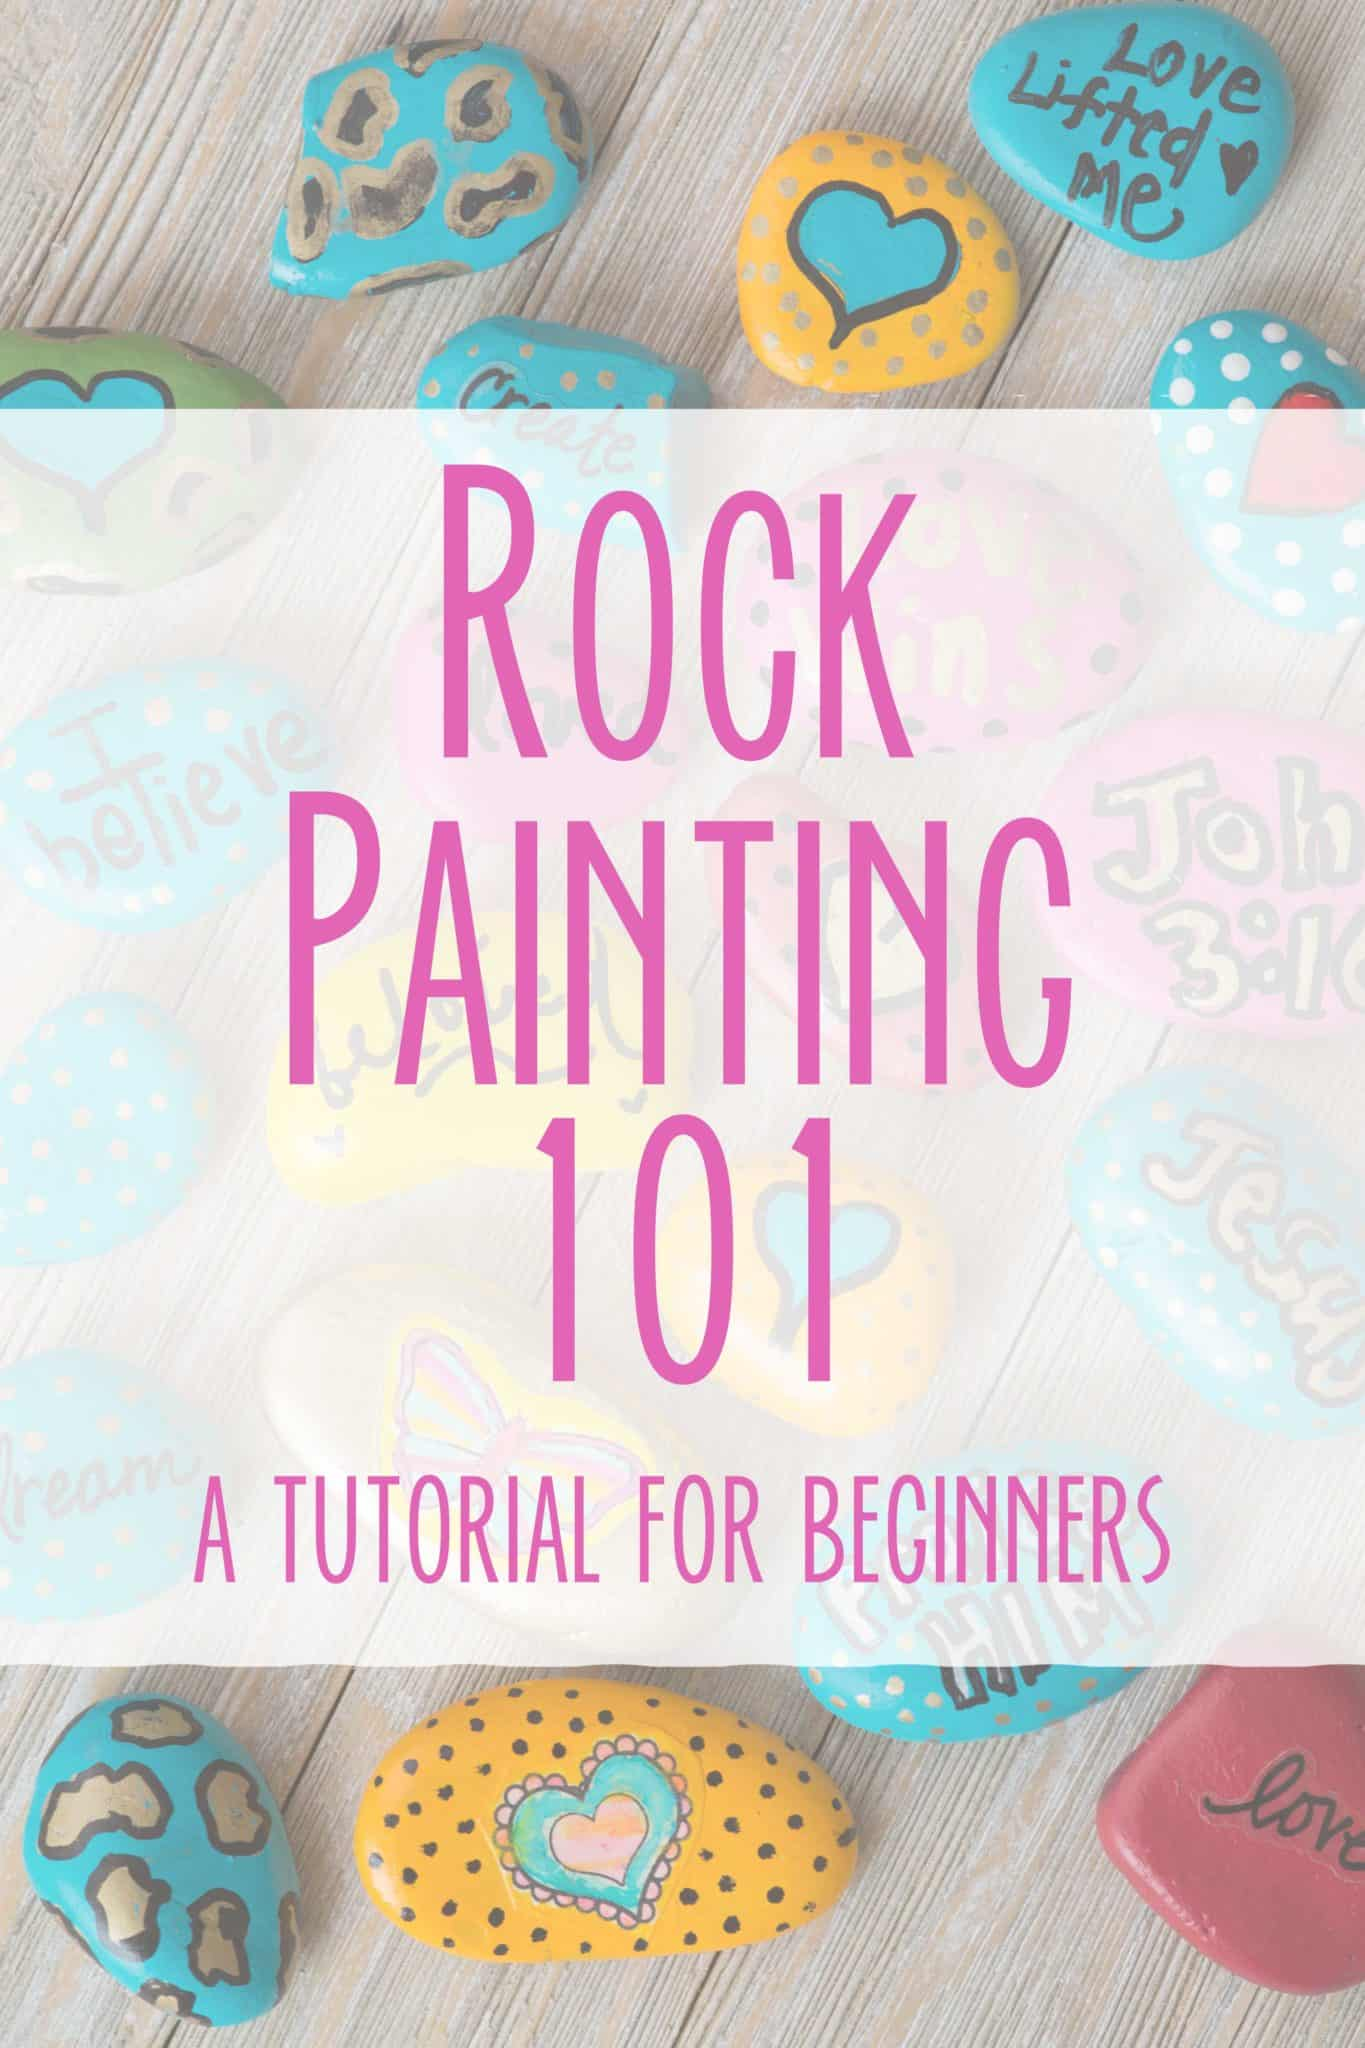 Looking To Get Started In Rock Painting? Check out this Easy Rock Painting Tutorial for Beginners from Hey Creative Sister